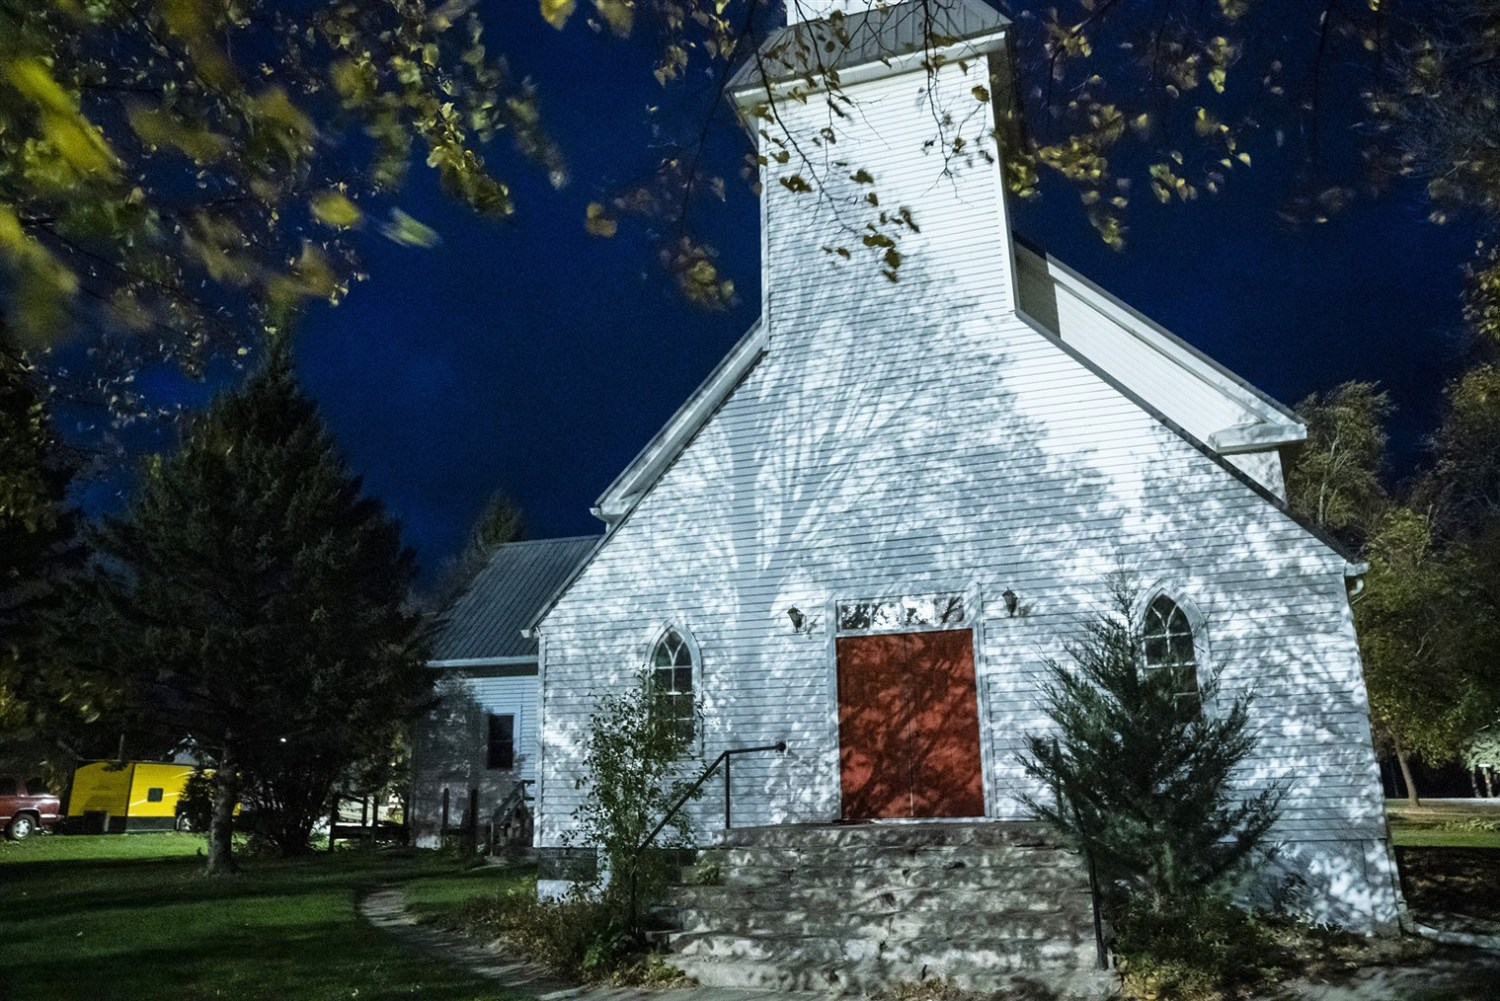 after permit approved for whites-only church, small minnesota town insists it isn't racist